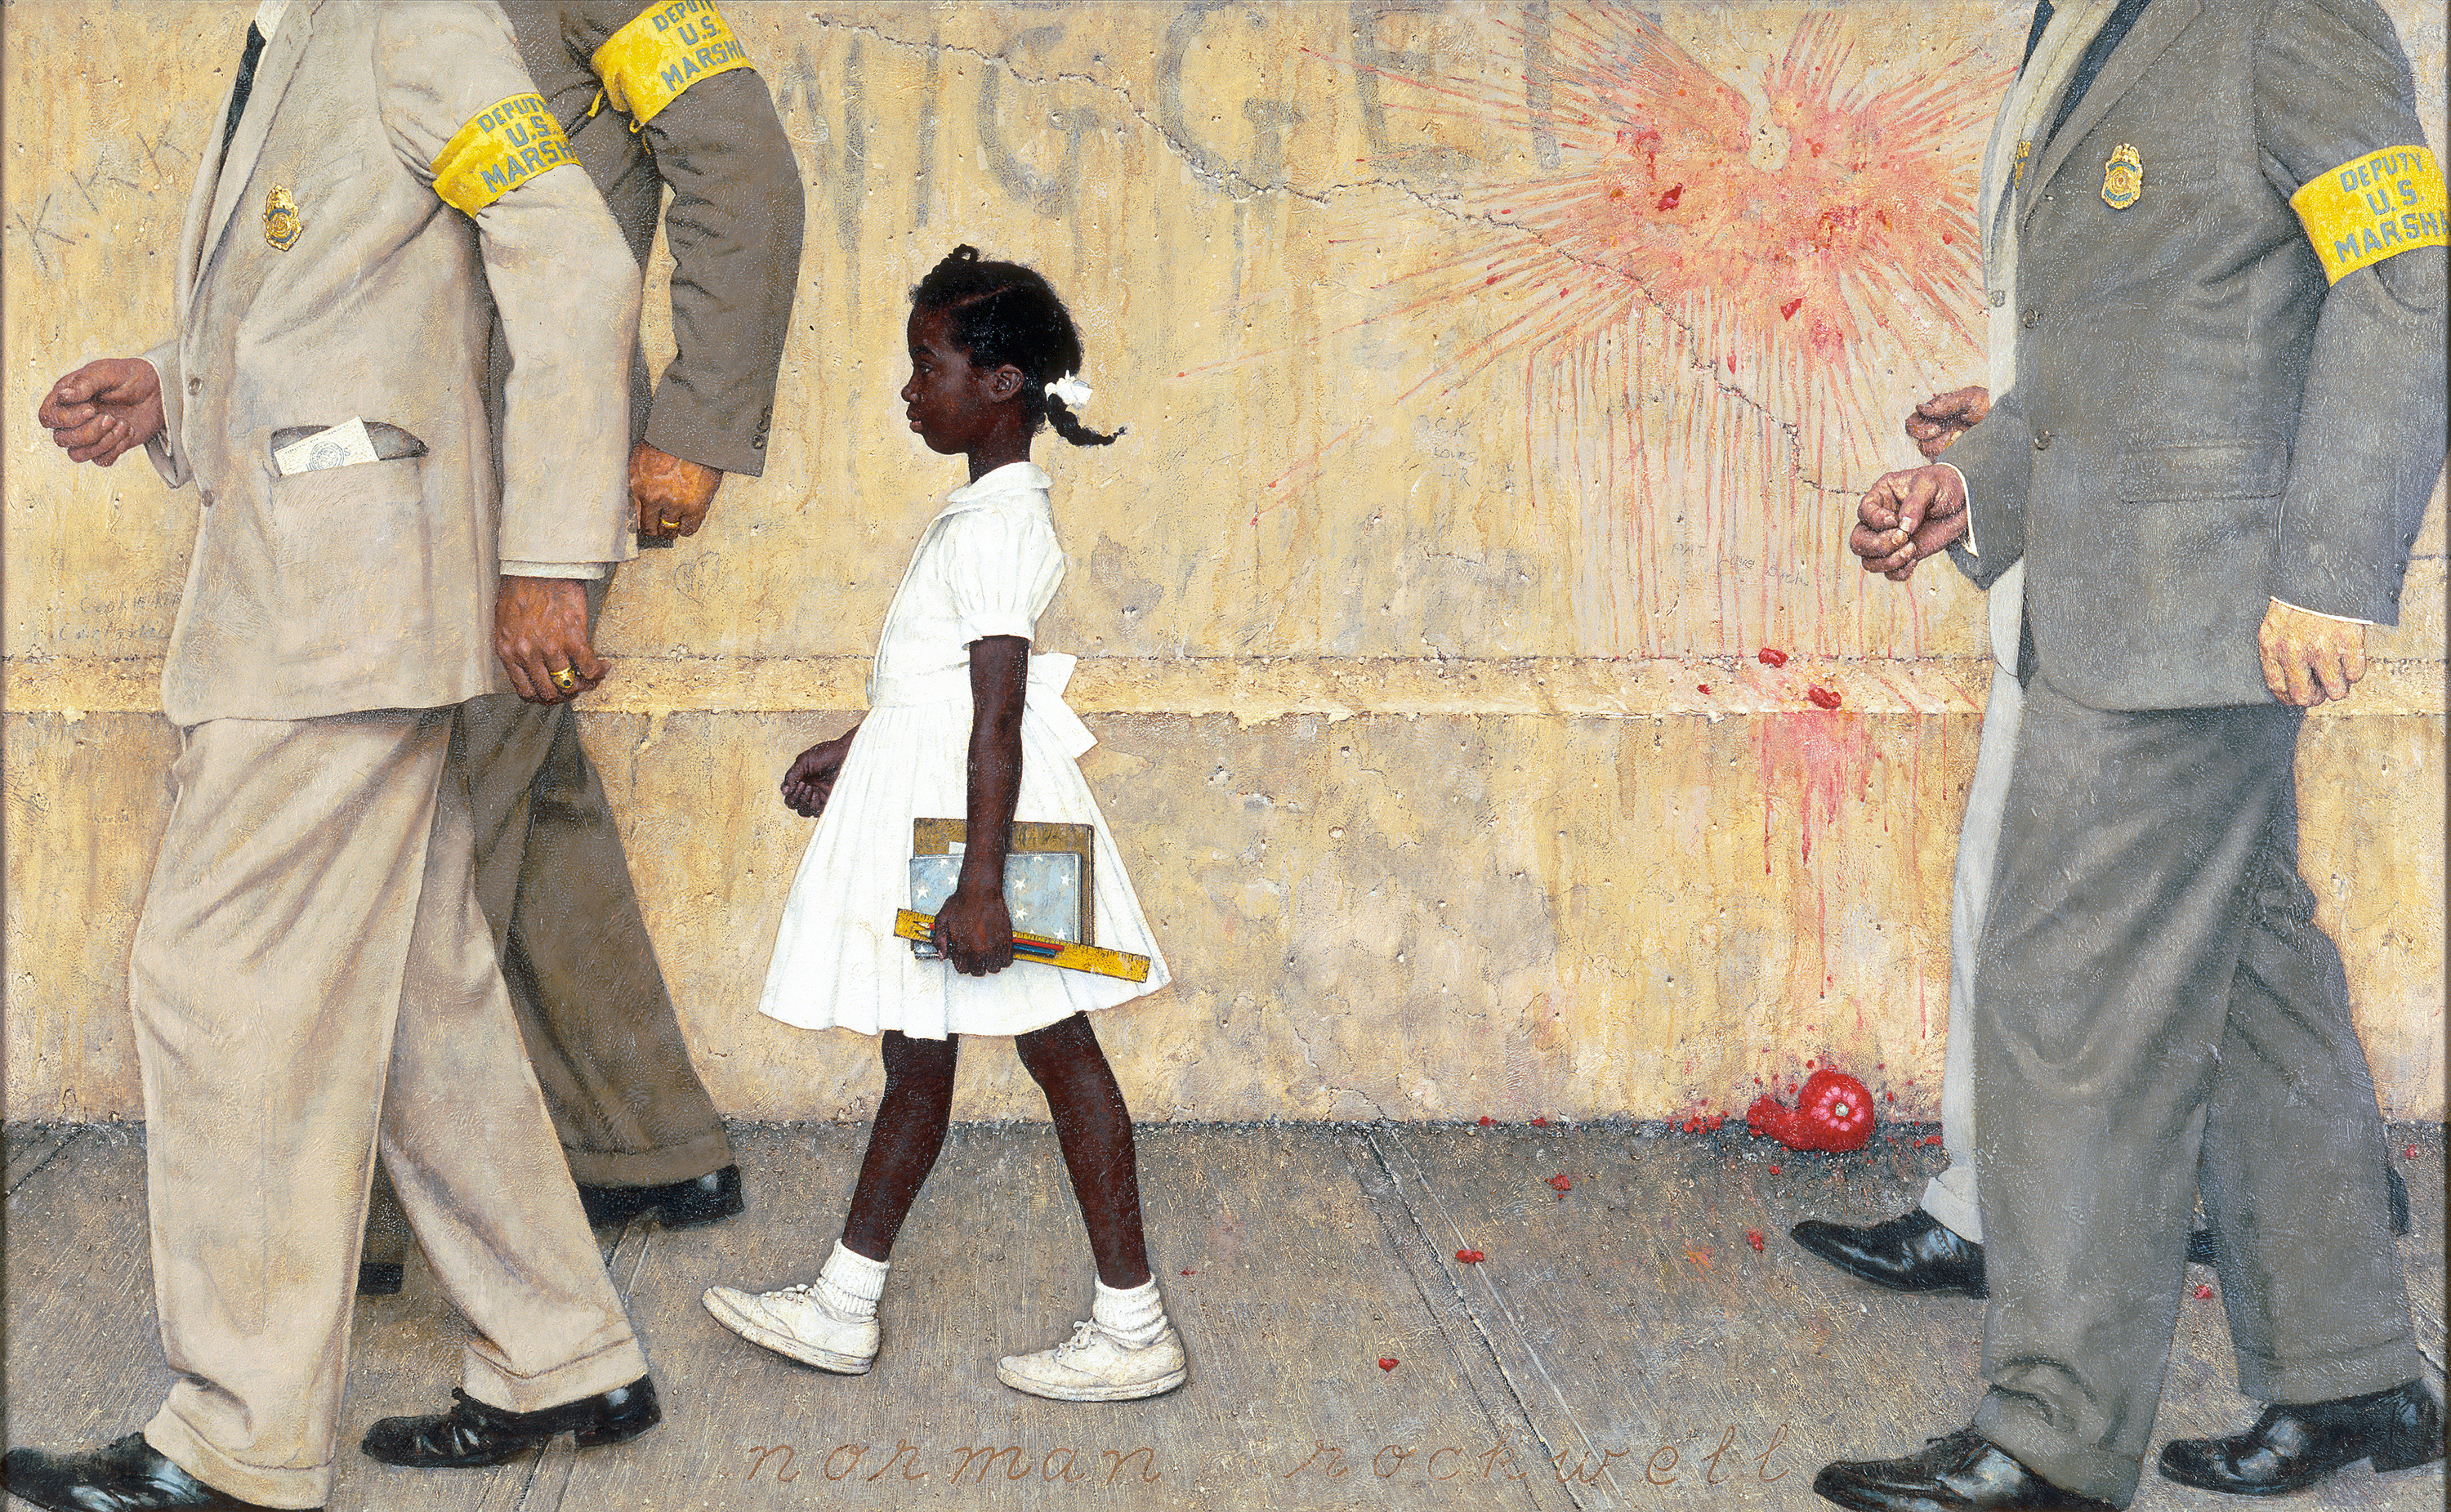 Norman Rockwell (1894-1978), The Problem We All Live With, 1963, oil on canvas, 36 x 58 inches. Norman Rockwell Museum Collections. American Chronicles: The Art of Norman Rockwell ​has been organized by the Norman Rockwell Museum in Stockbridge, Massachusetts.